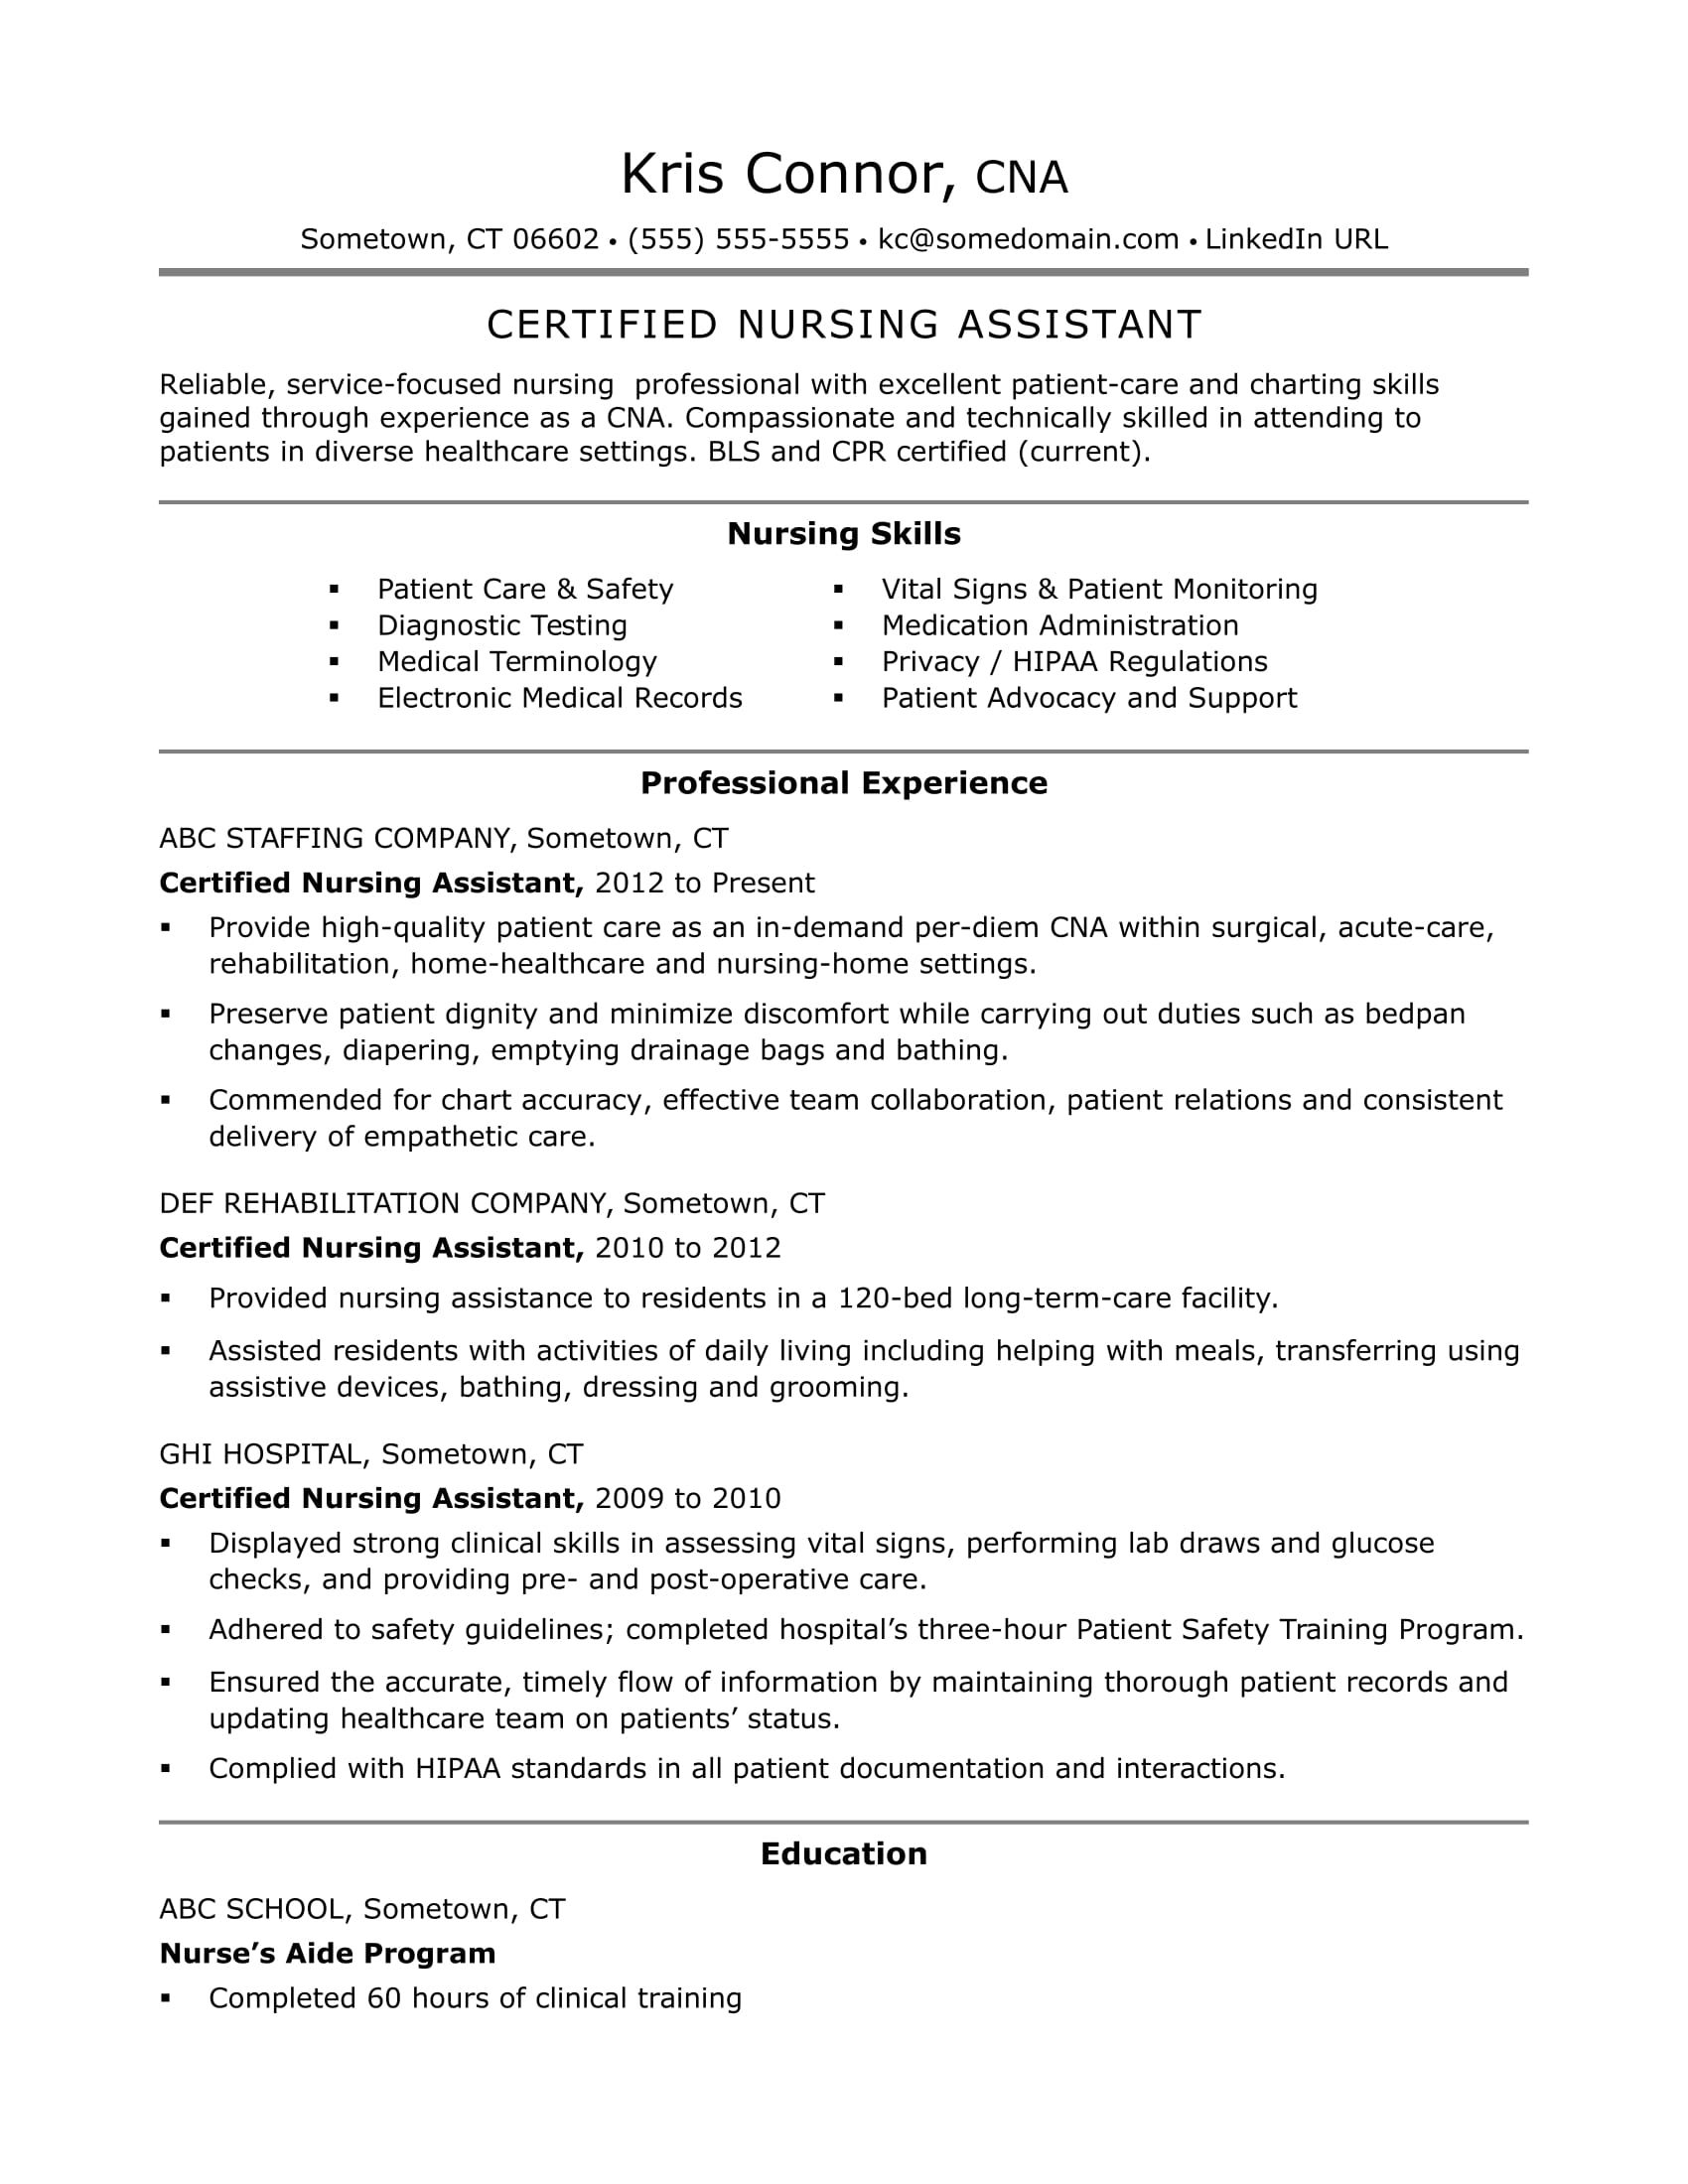 cna resume example - Skills And Abilities To Put On A Resume